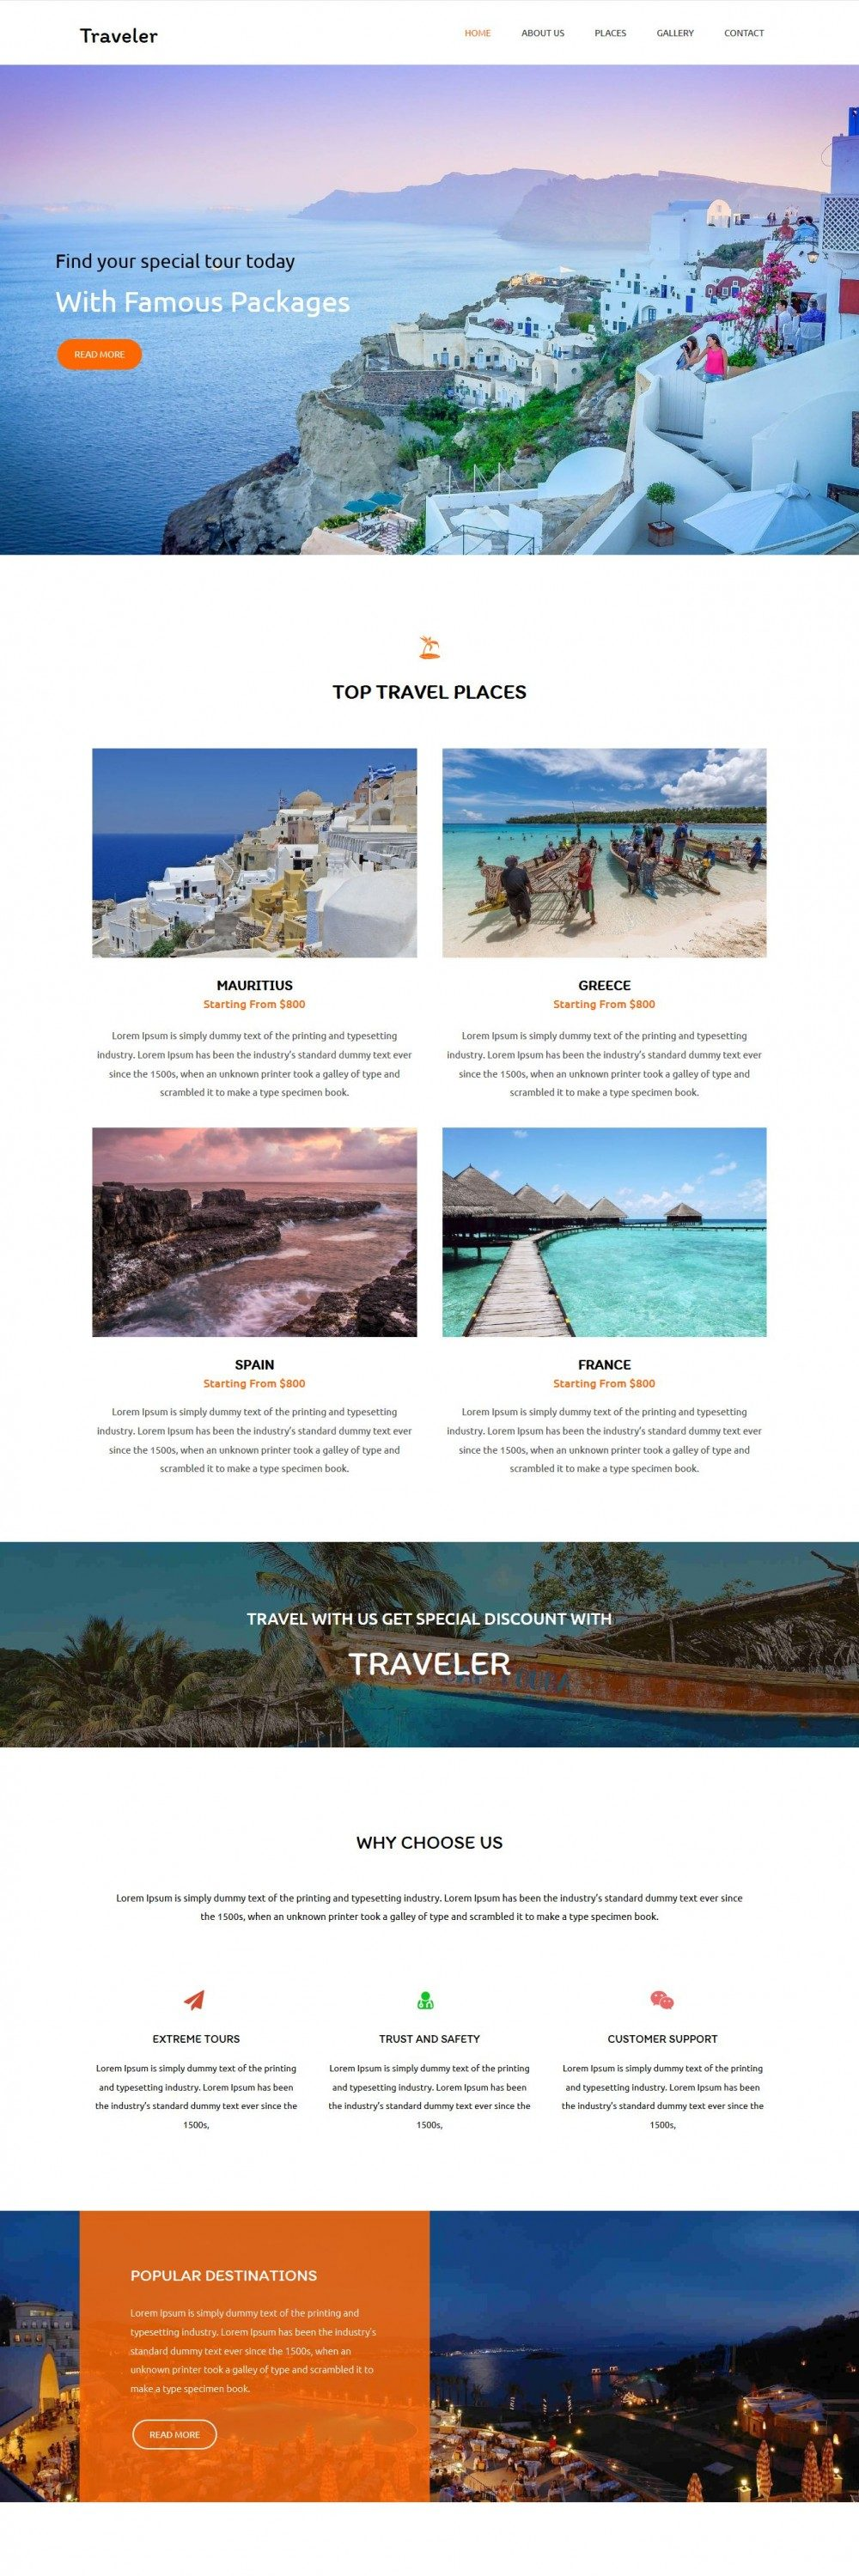 Traveler – Travel Agency Drupal Theme